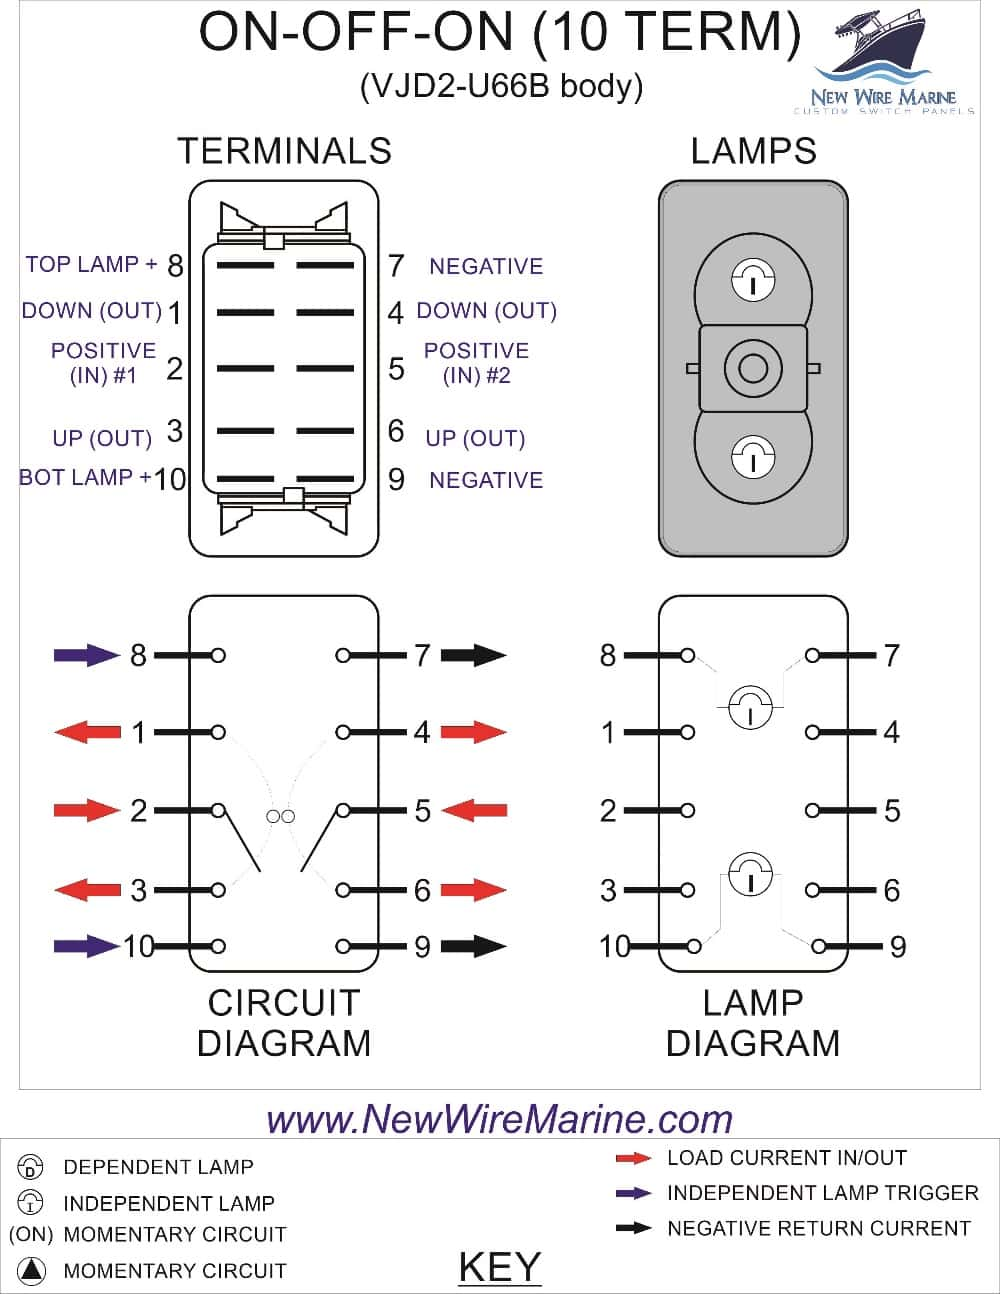 medium resolution of on off on dpdt wiring diagram simple wiring schema dpdt switch wiring diagram dpdt toggle switch